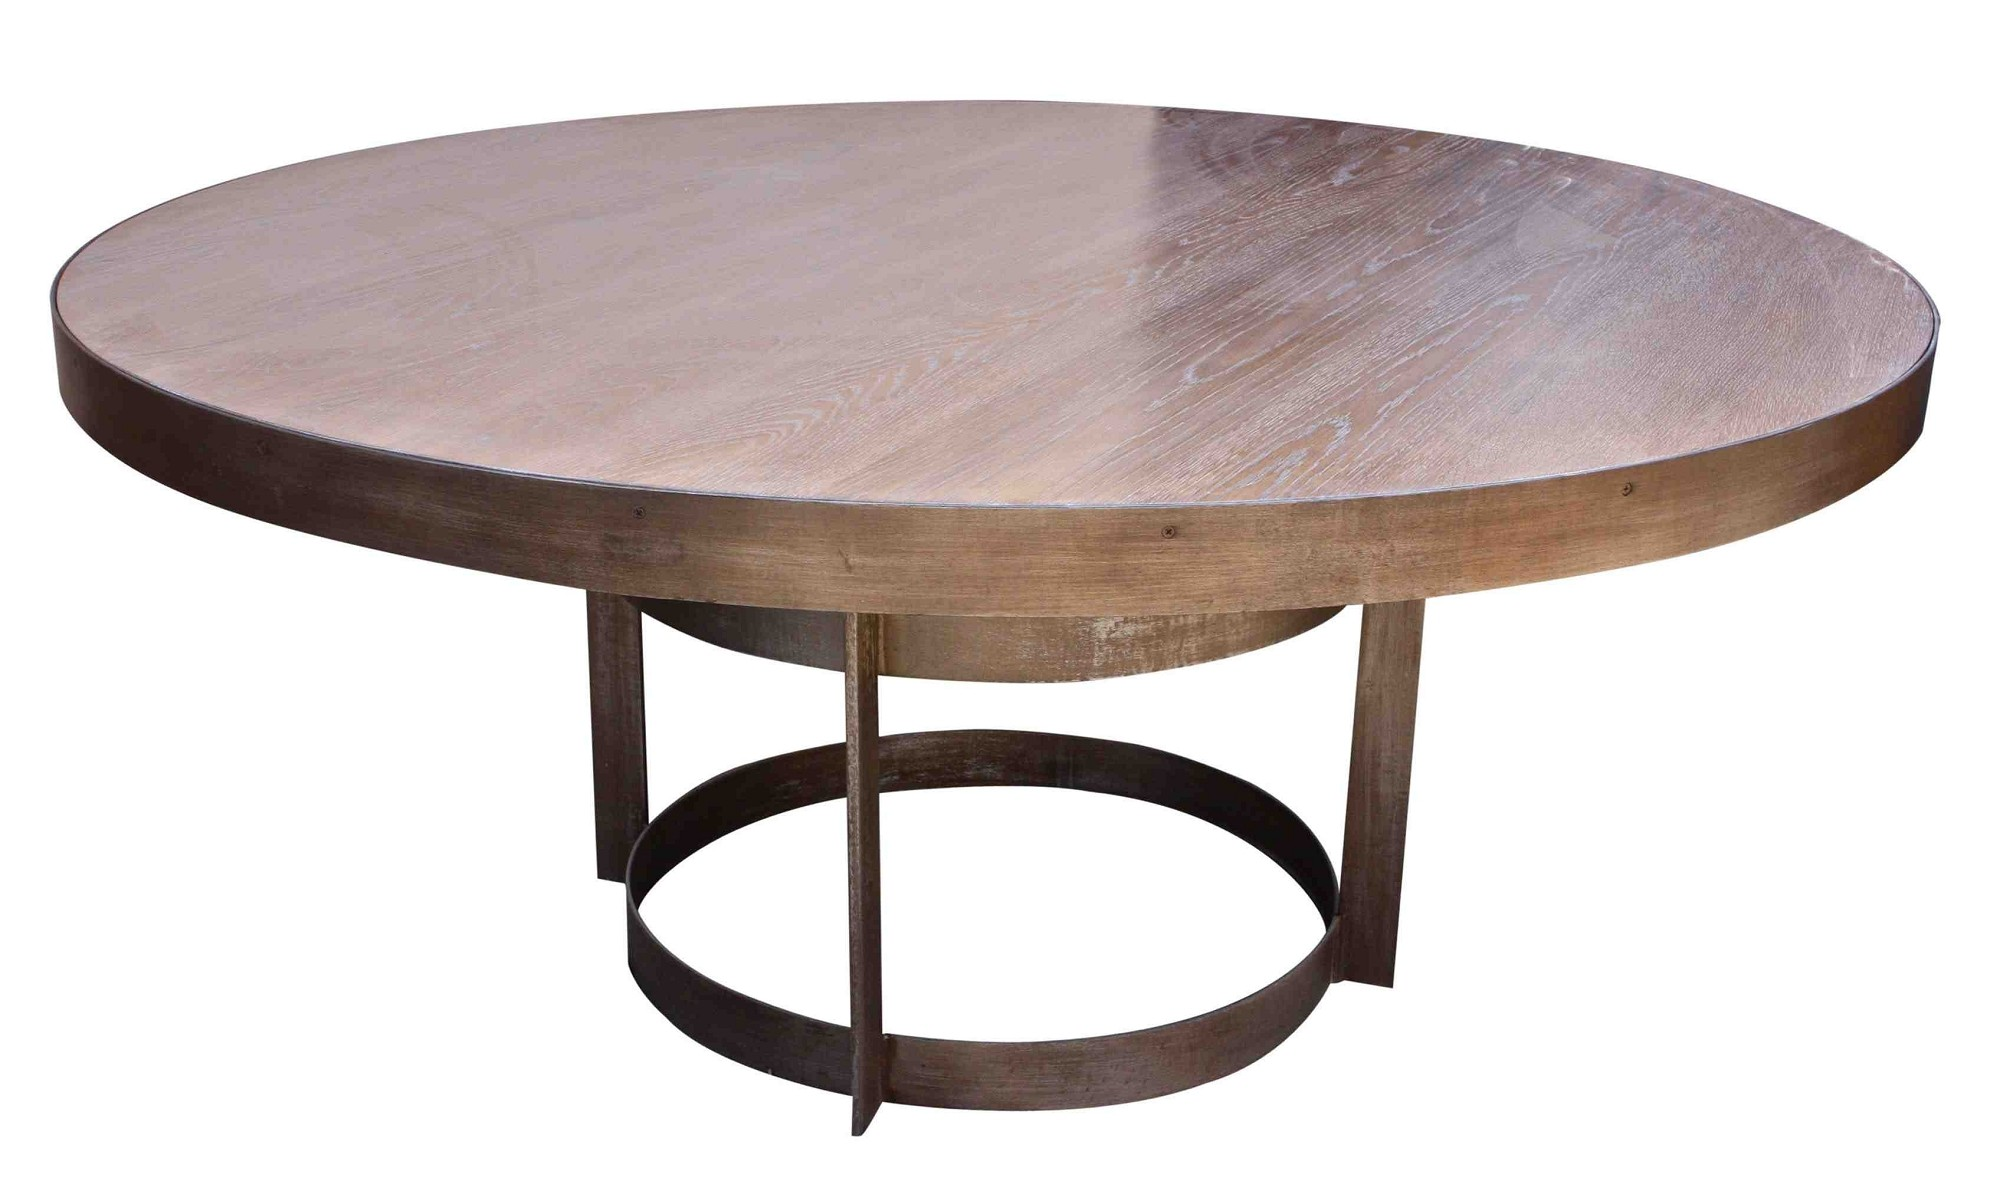 dining room table tables coffee and chairs commercial round restaurant for luxury furniture rest chair pub bar second hand accent full size rustic side living garden patio pottery